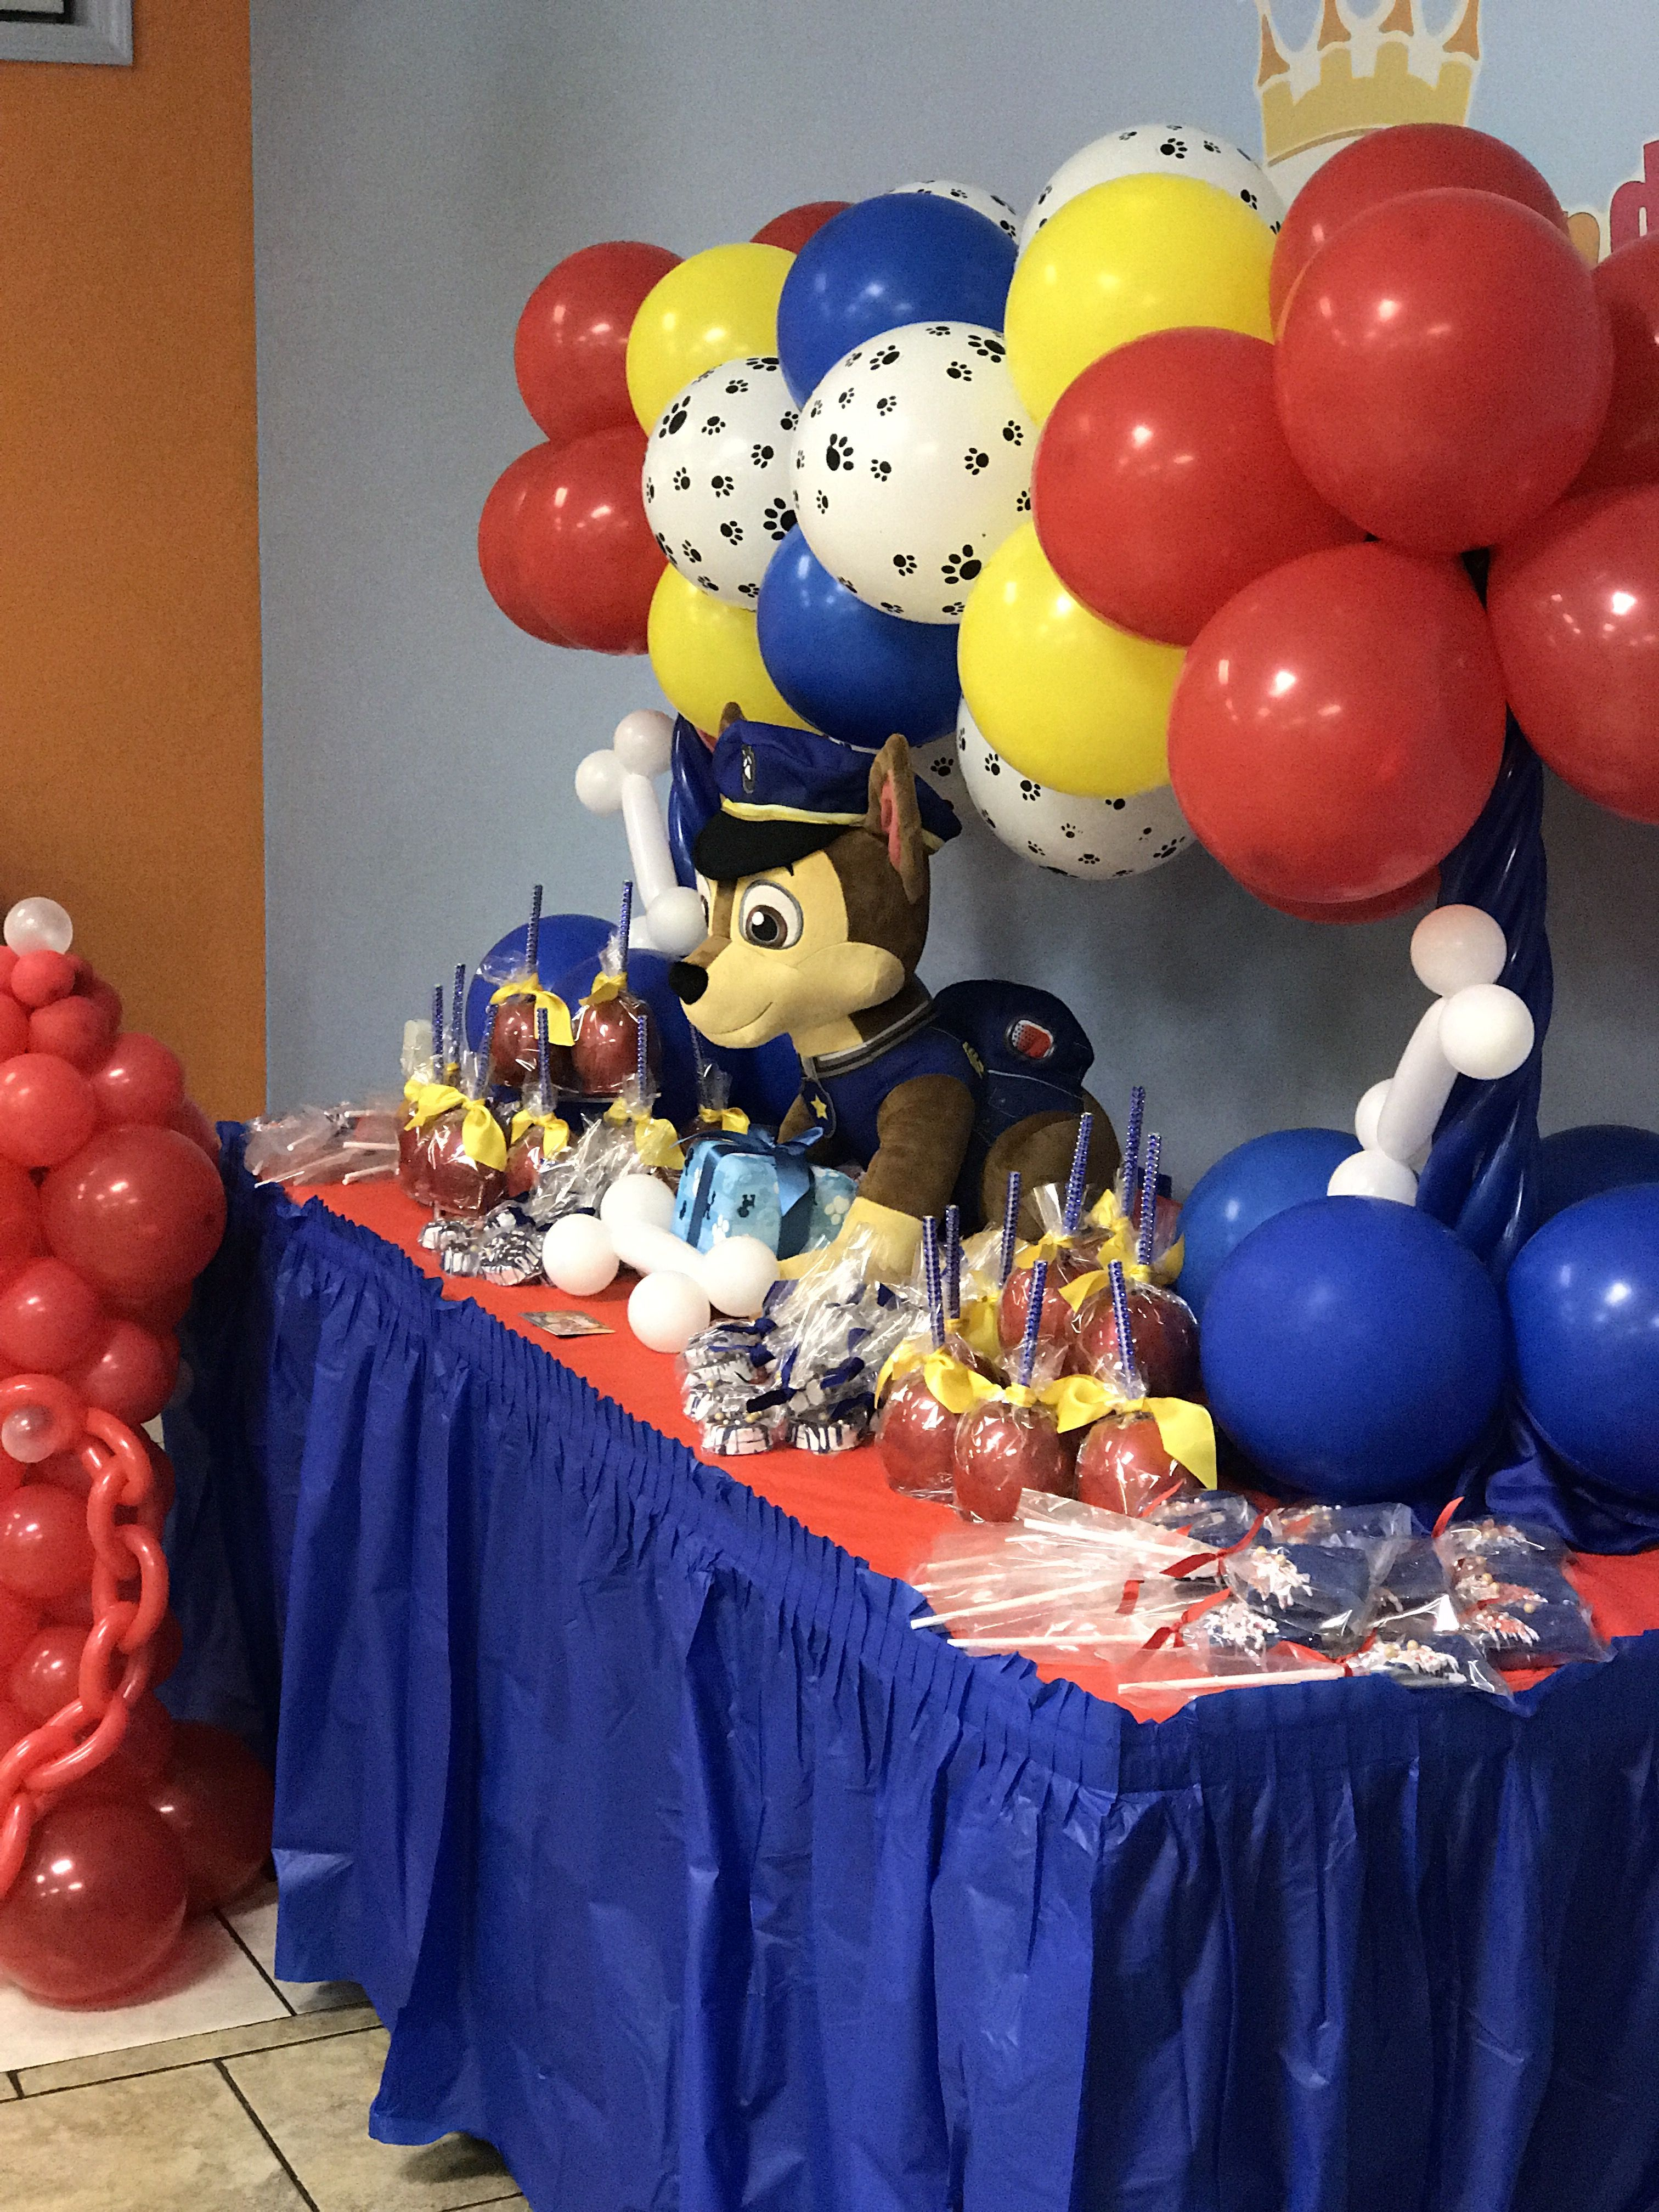 Paw Patrol Candy Table And Decor Paw Patrol Party Decorations Paw Patrol Birthday Party Paw Patrol Party